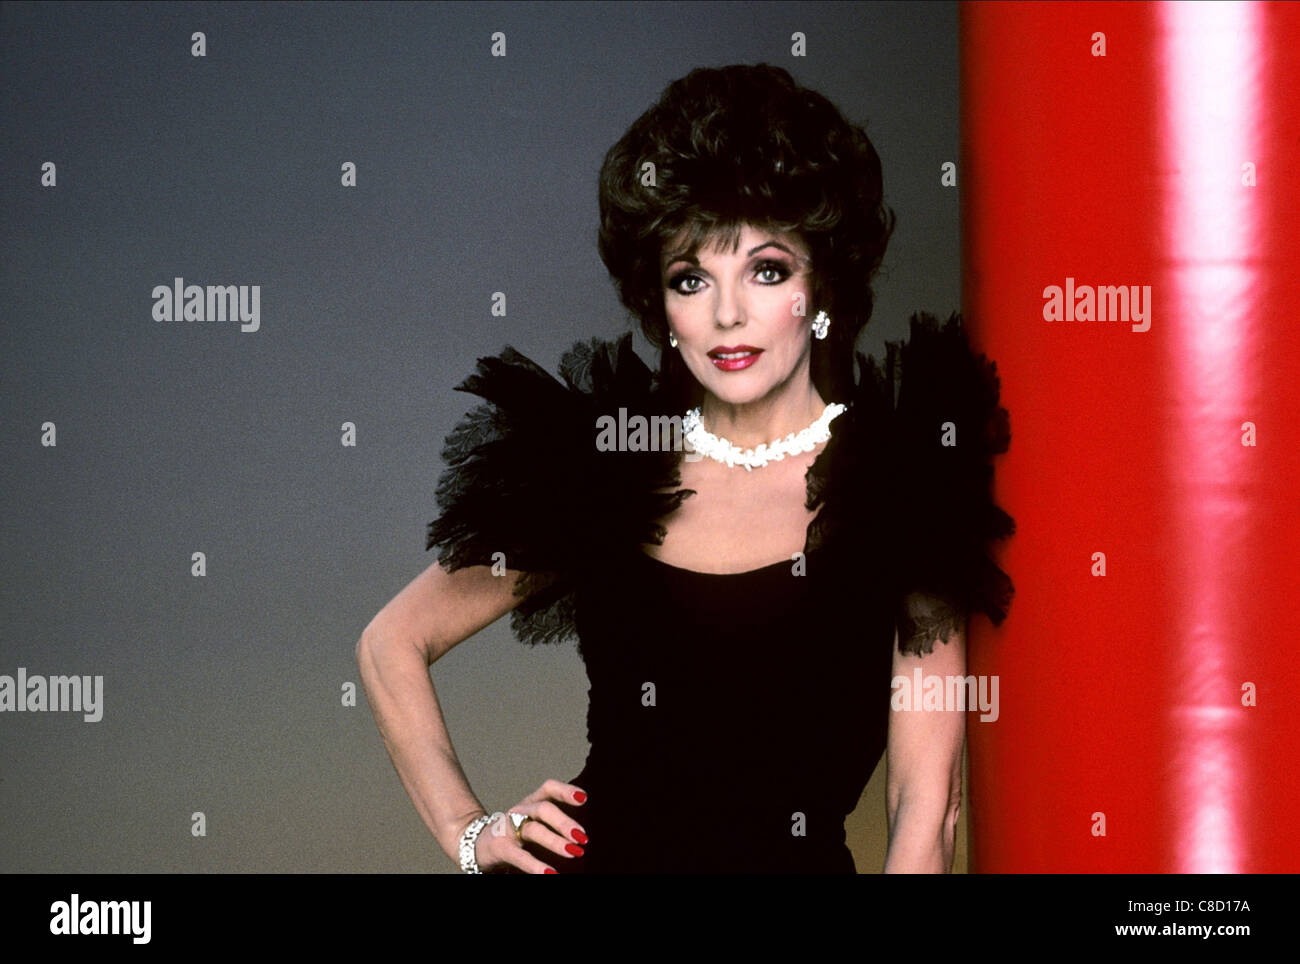 JOAN COLLINS DYNASTY (1985) - Stock Image